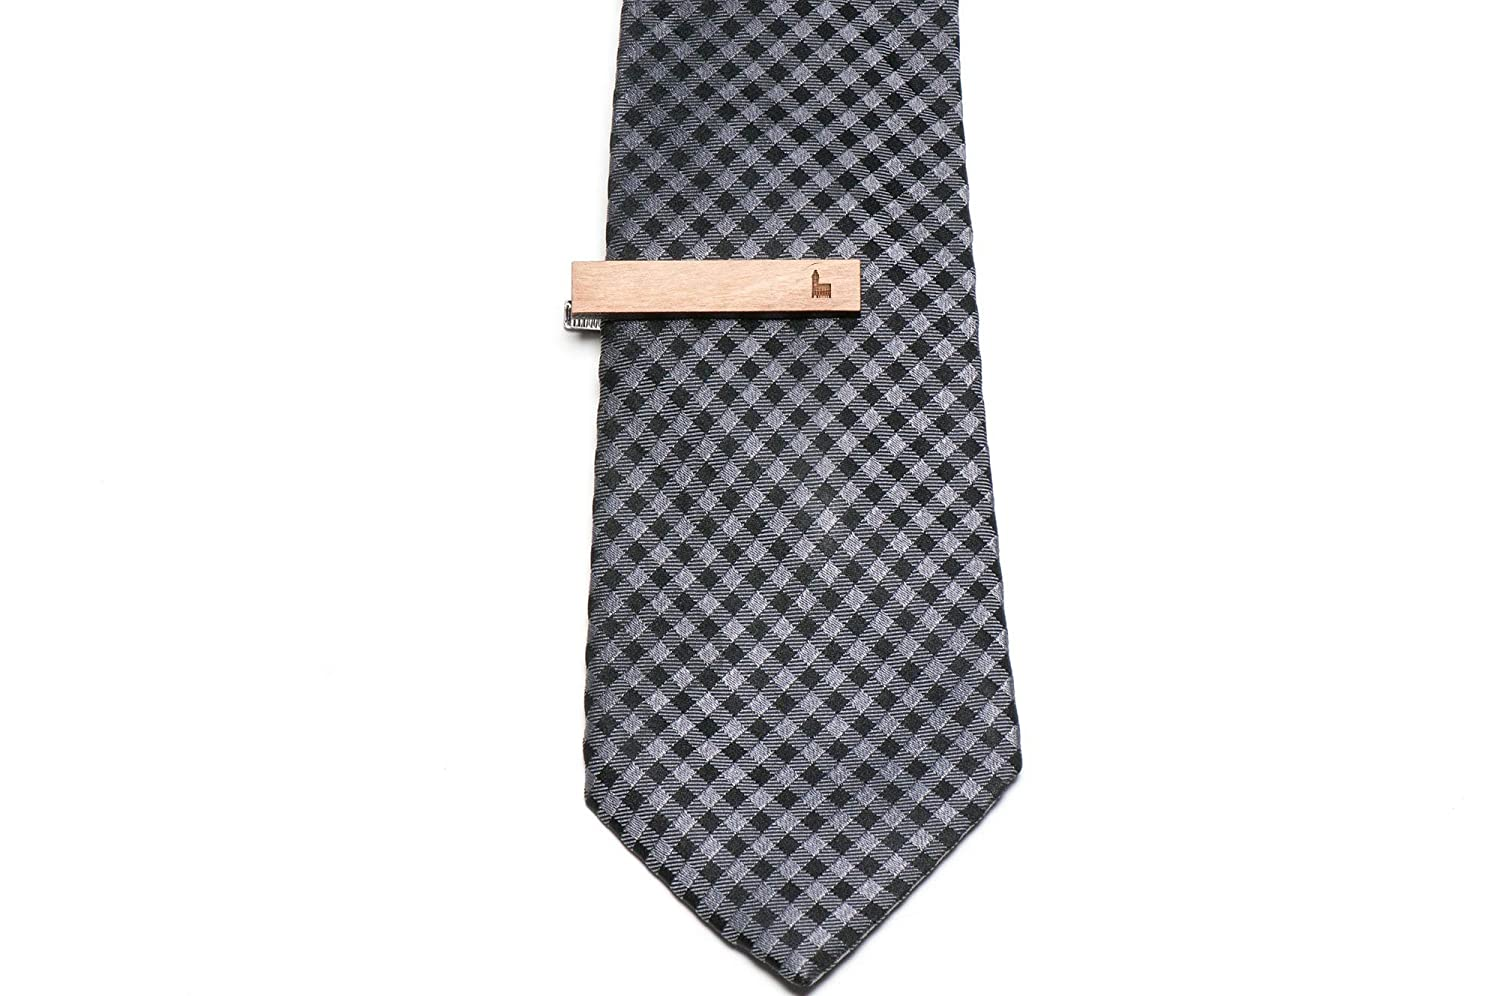 Wooden Accessories Company Wooden Tie Clips with Laser Engraved Palacio Salvo Design Cherry Wood Tie Bar Engraved in The USA